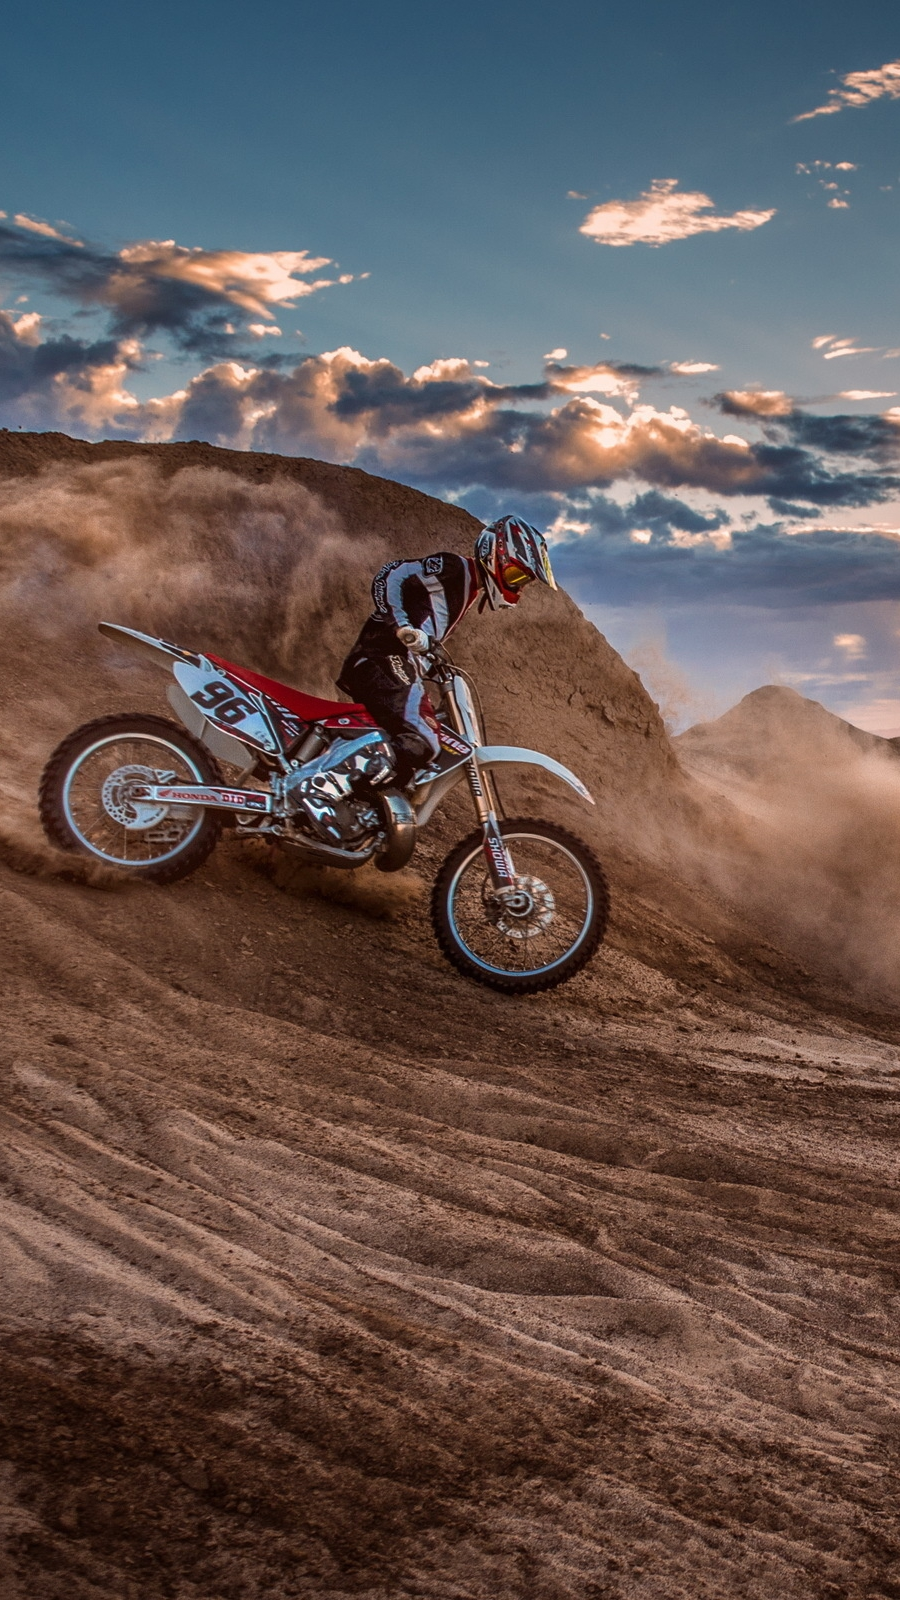 Motocross Stunt Iphone Wallpaper Iphone Wallpapers